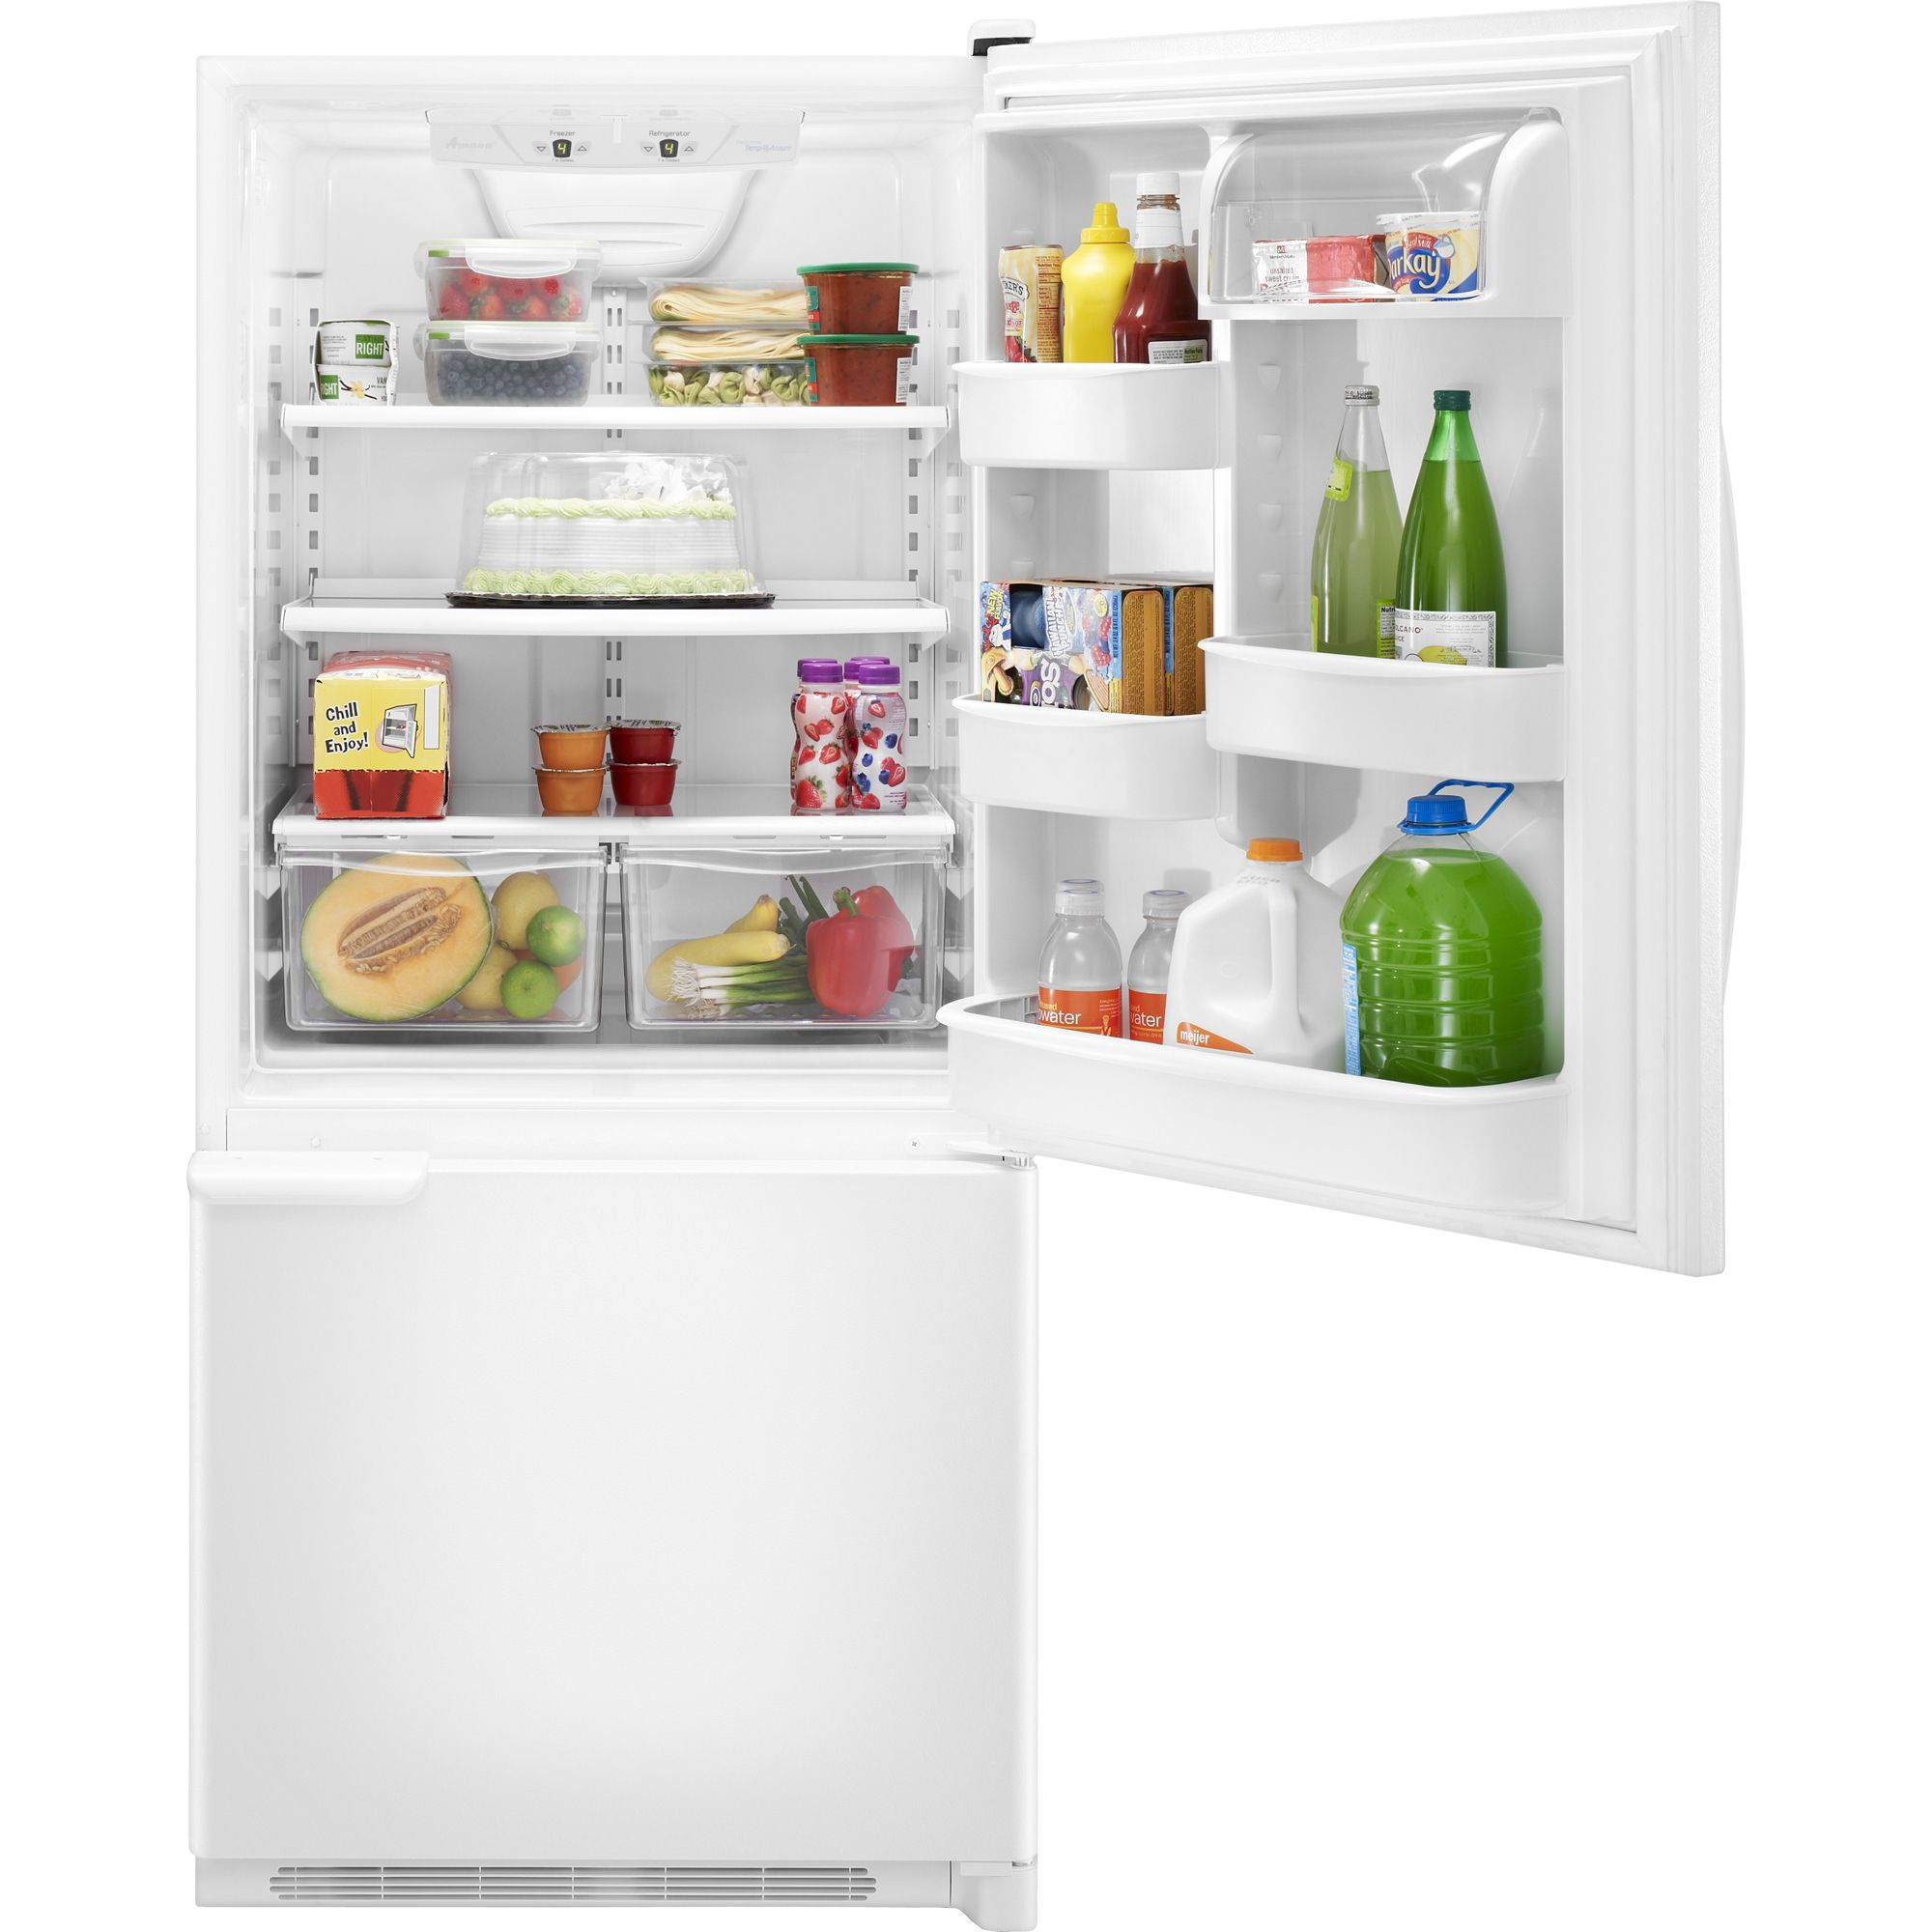 WHIRLPOOL   18.5 cu. ft. Single-Door Bottom-Freezer Refrigerator - White